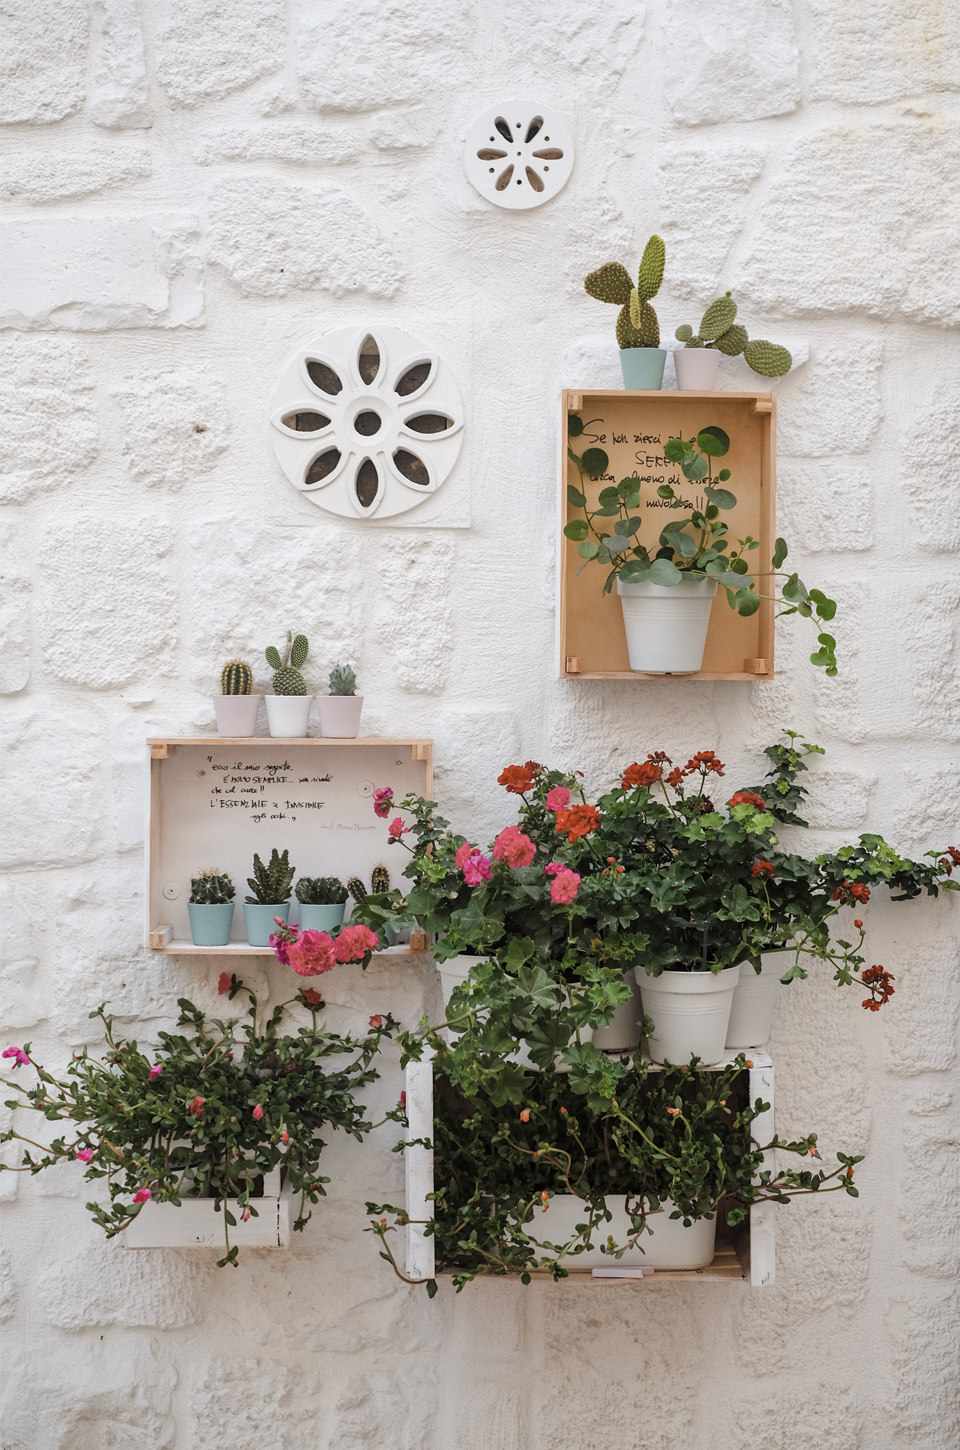 A glimpse of Puglia, decoration with plants on a white wall in Polignano